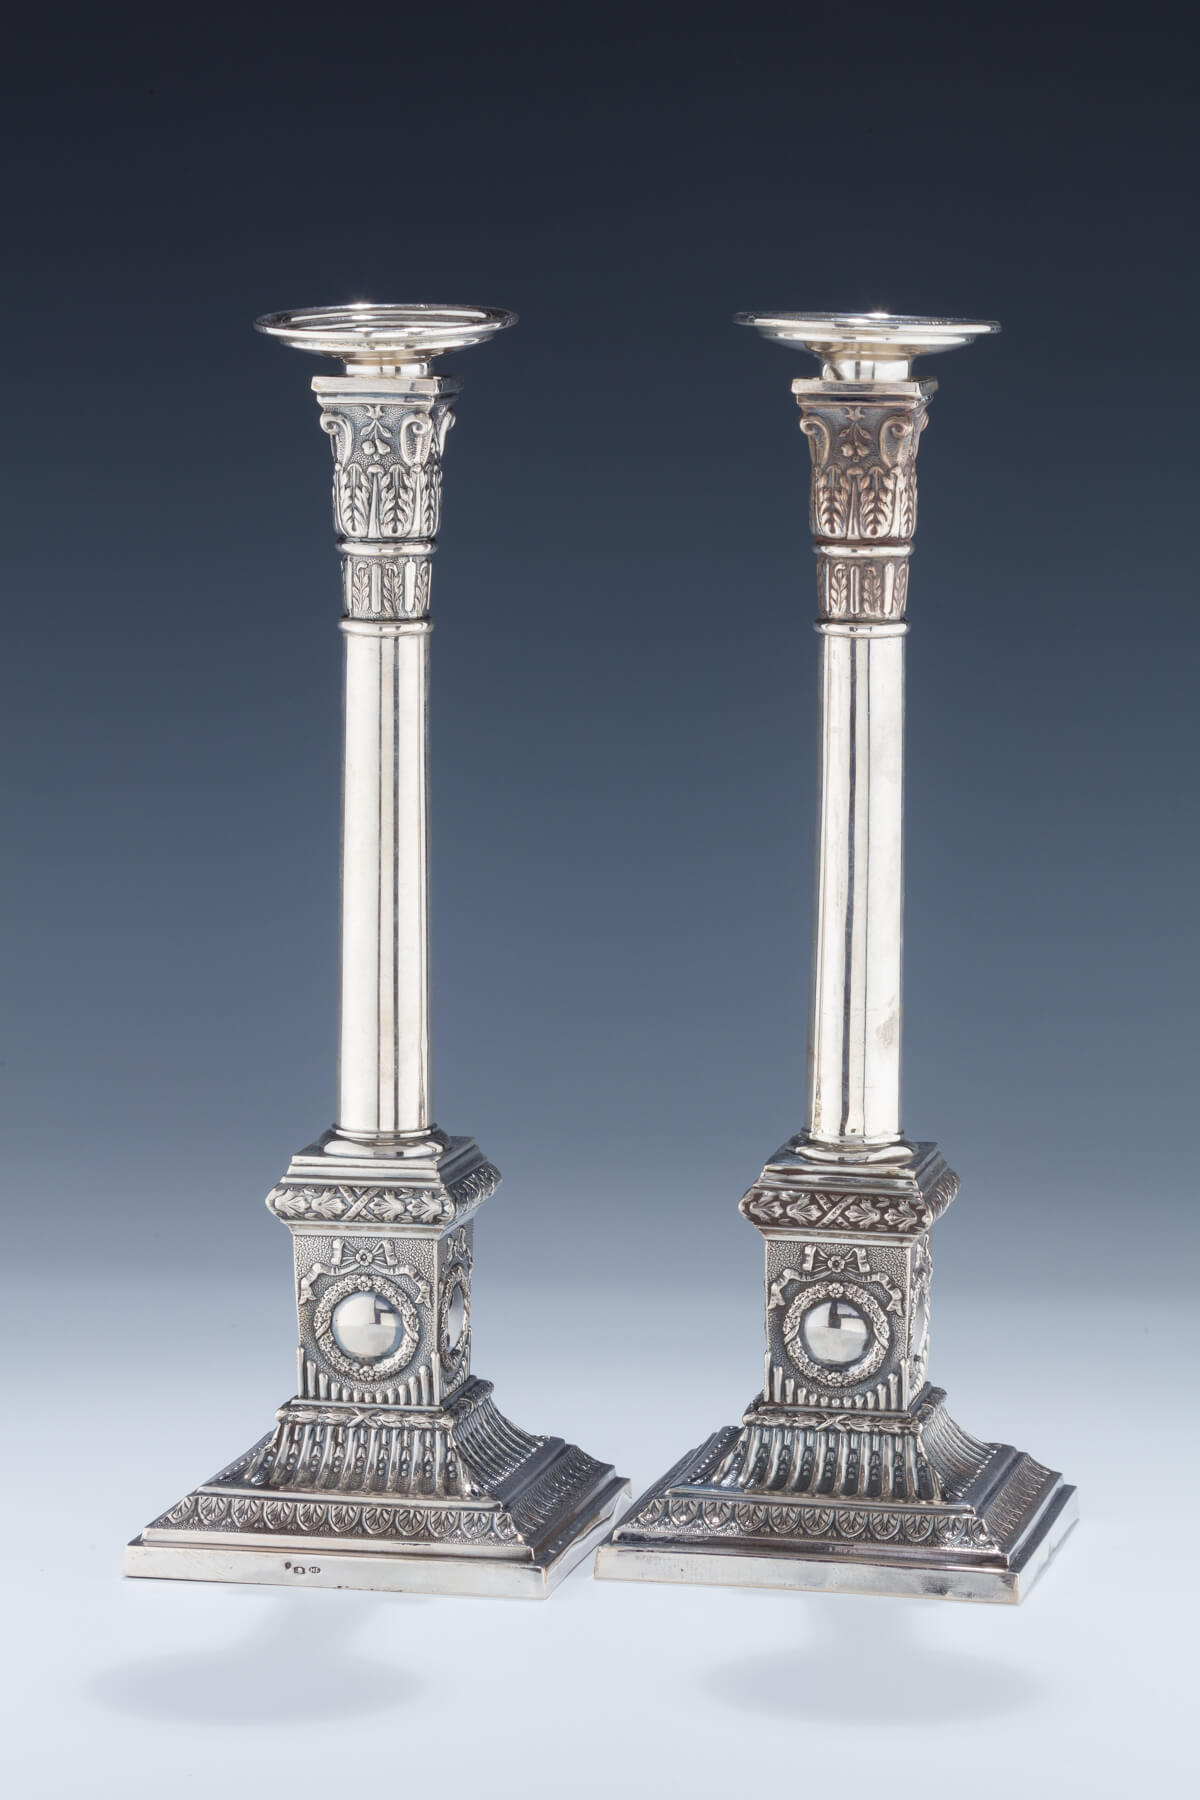 076. A Pair of Silver Candlesticks